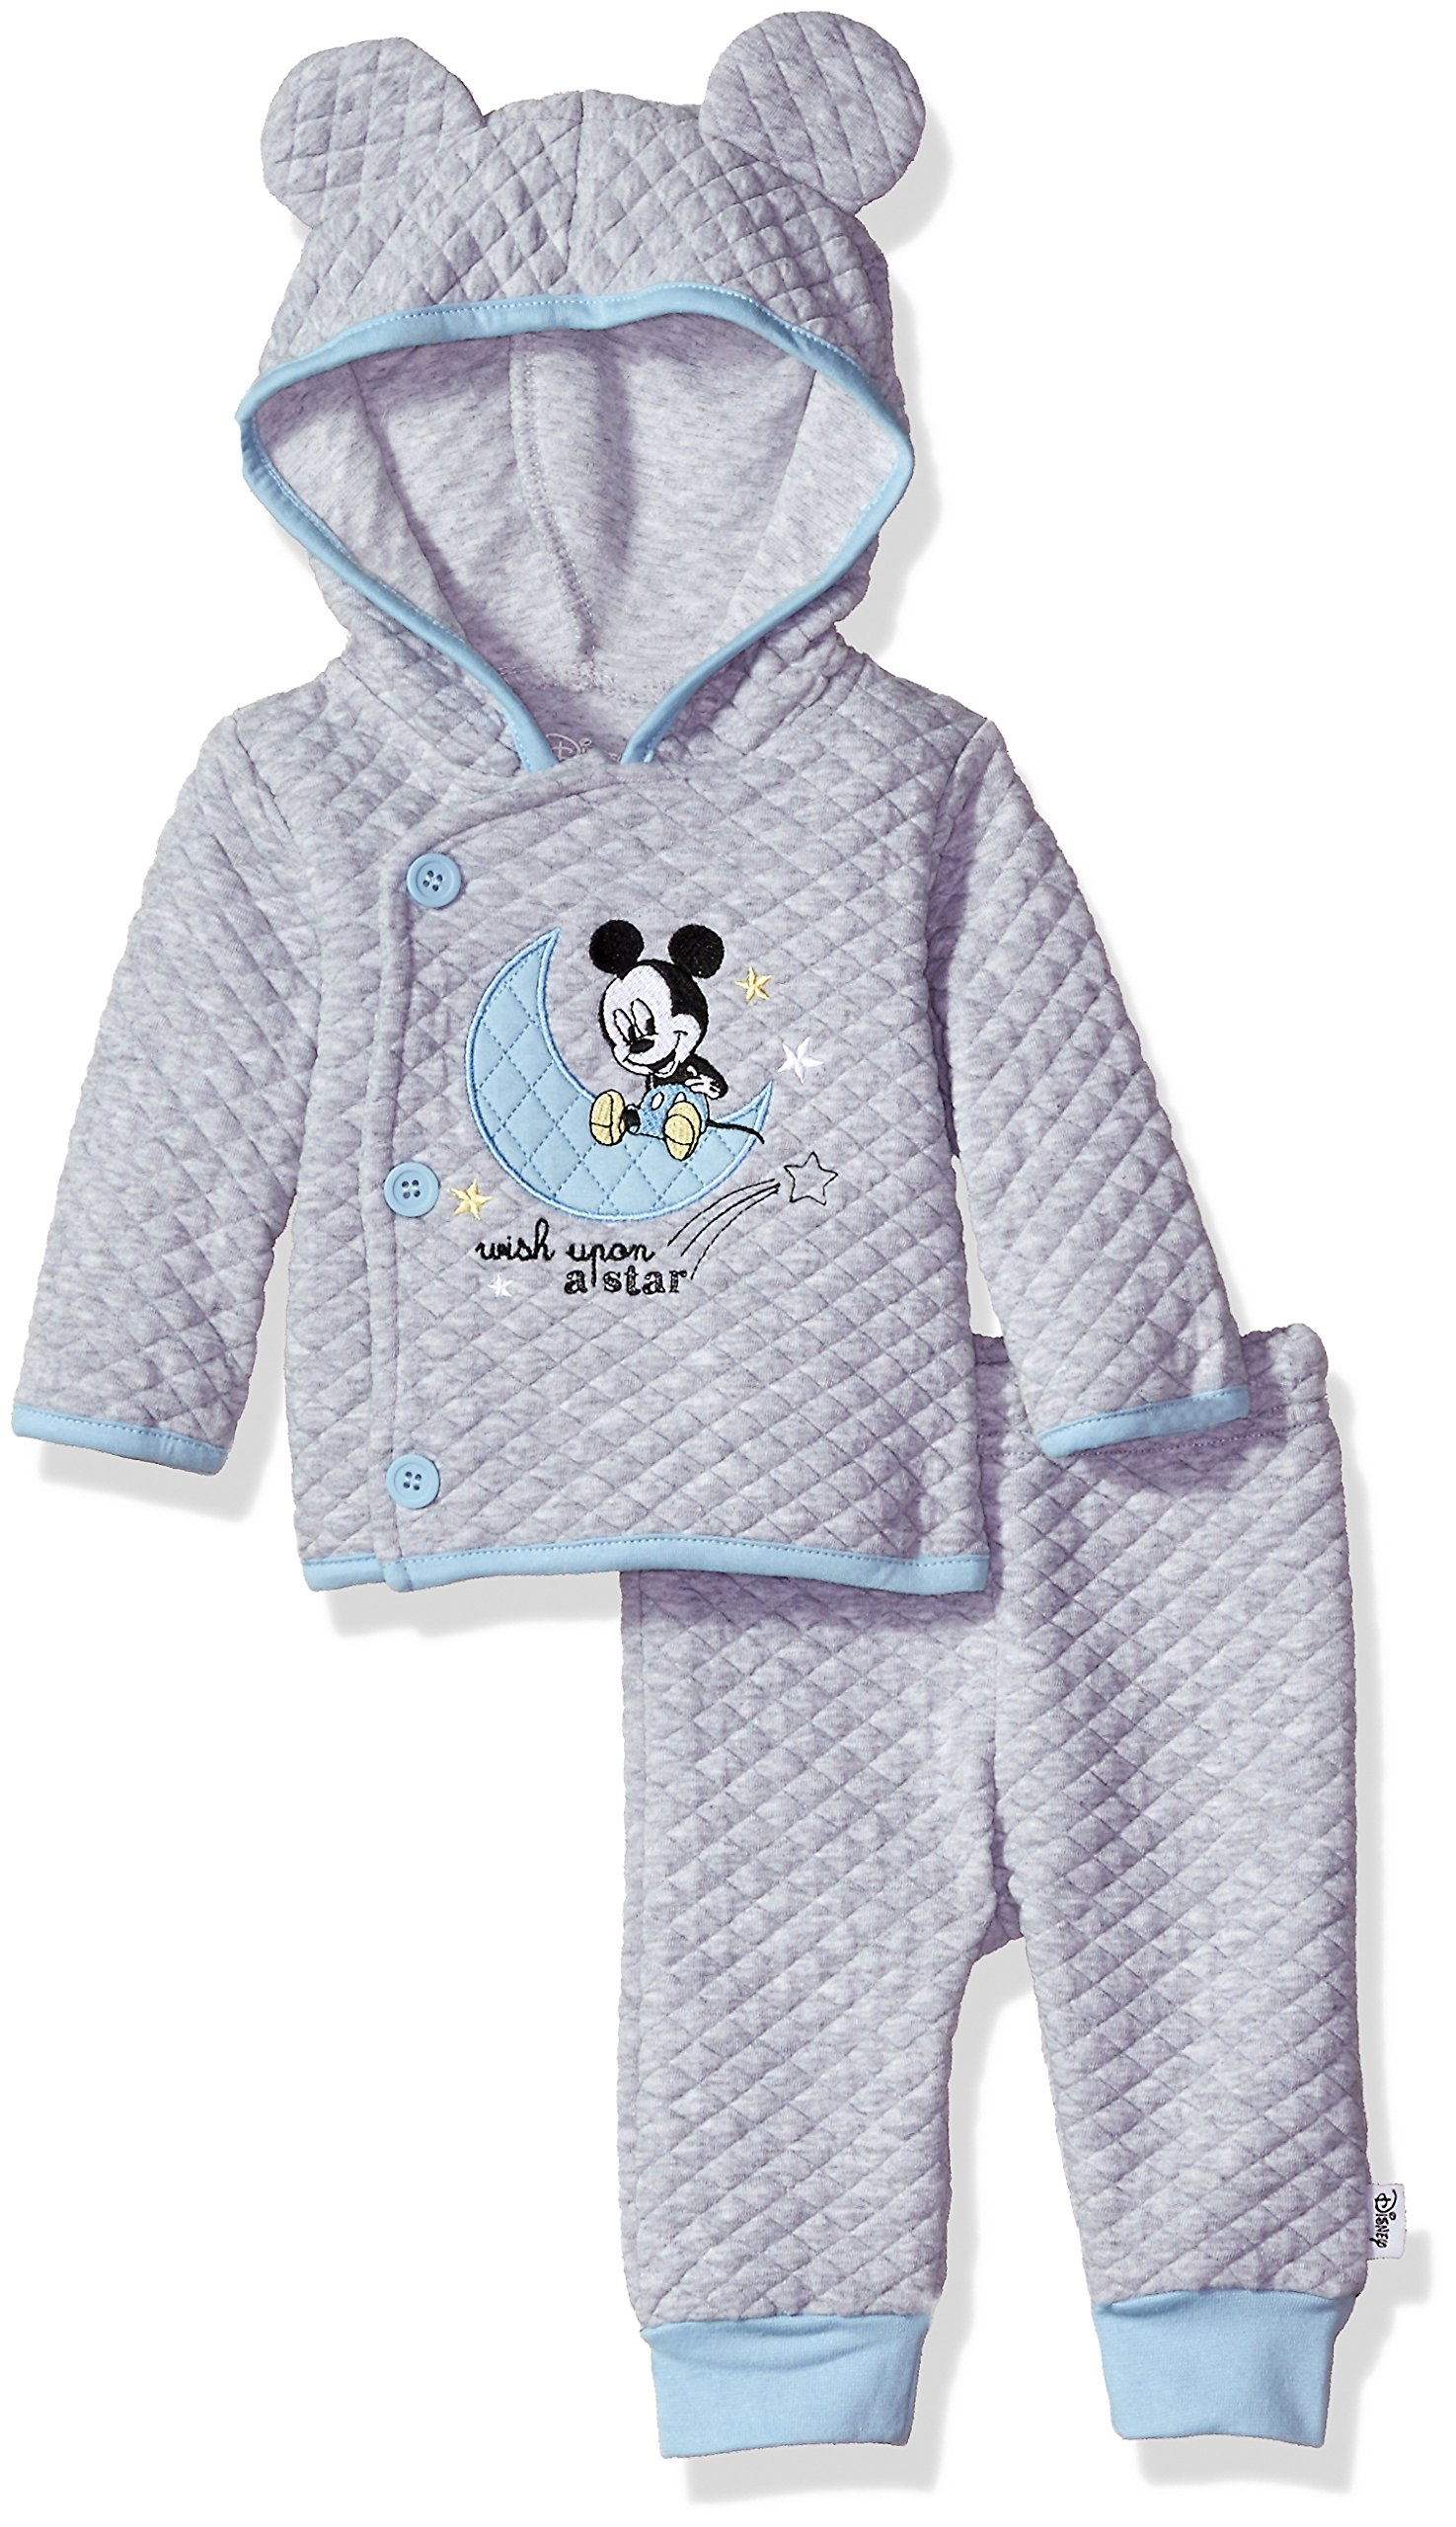 2cac40473 Galleon - Disney Baby Boys' Mickey Mouse 2 Piece Hoodie With Ears And Pant  Set, Lightheather Grey, 6-9 Months